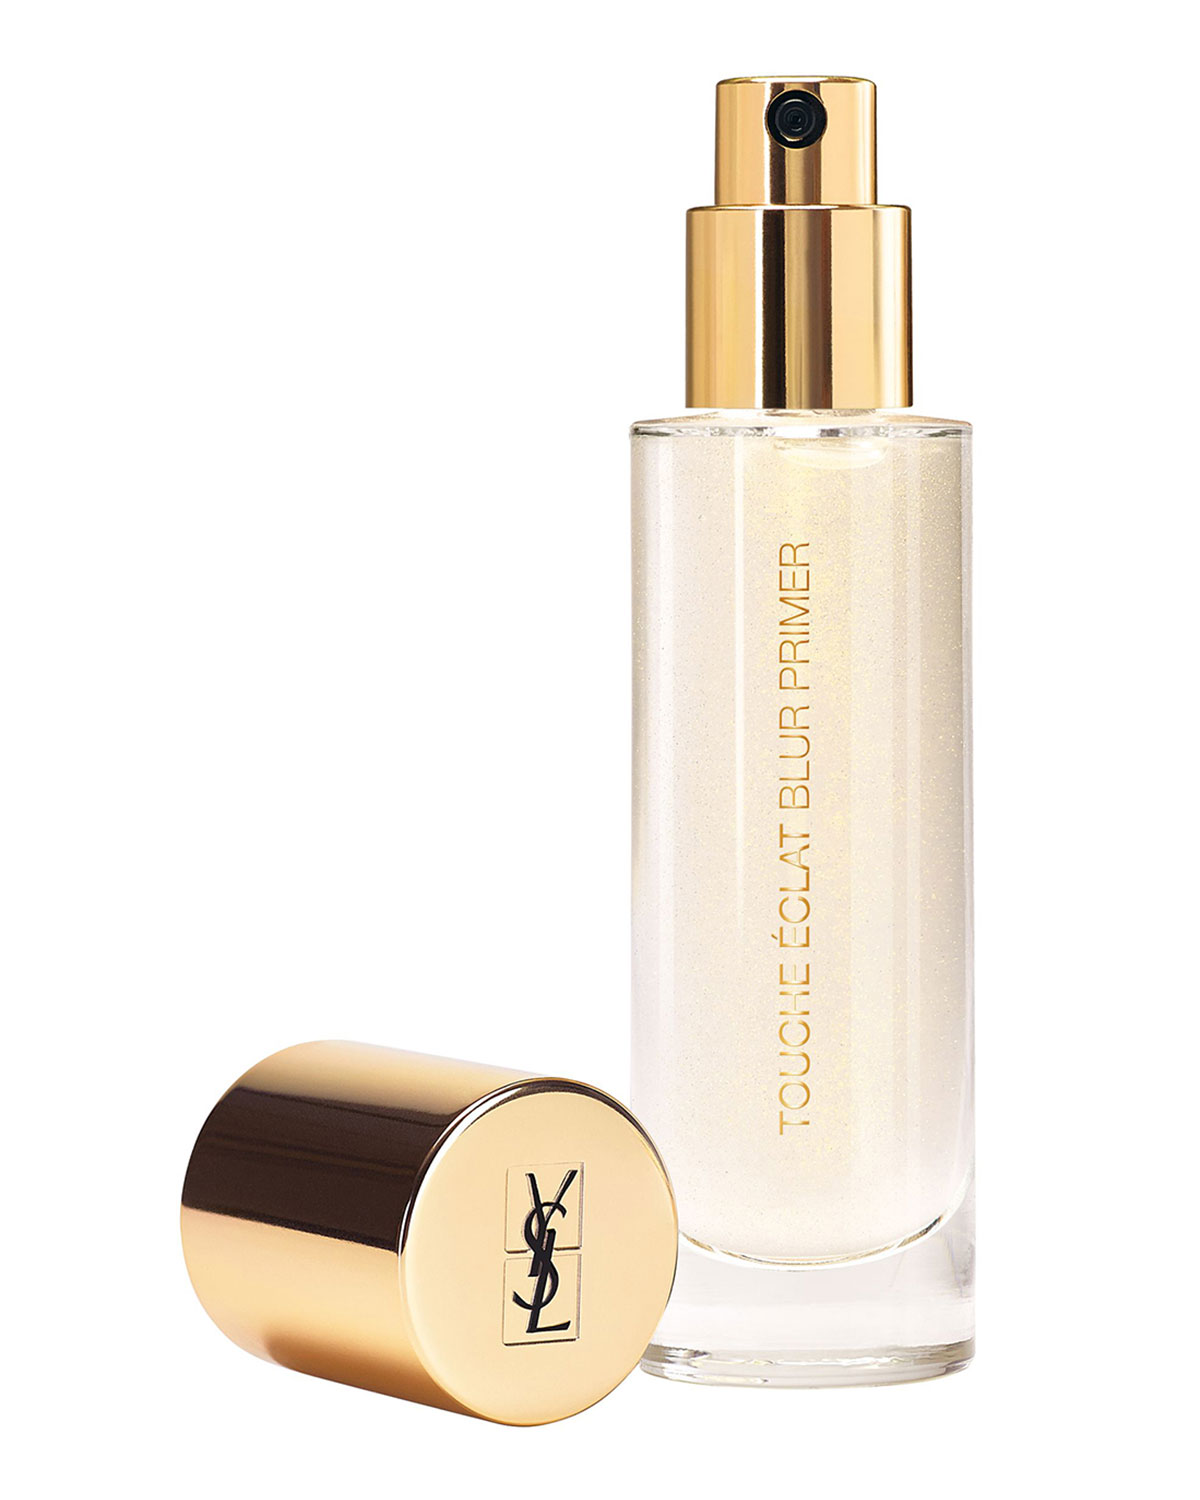 Touche Éclat Blur Primer by Yves Saint Laurent Beaute